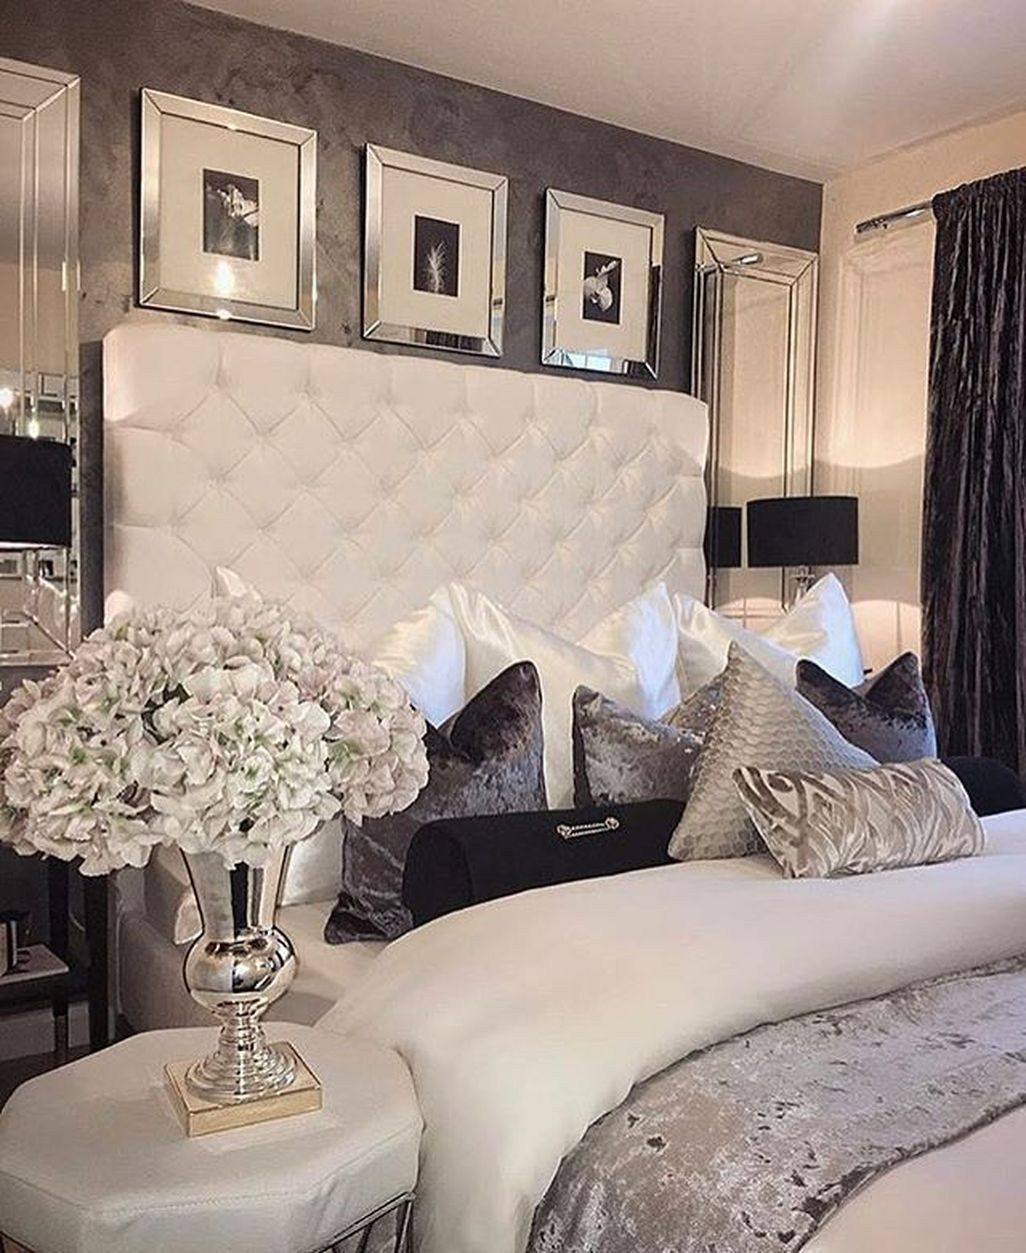 Elegant Small Master Bedroom Decoration Ideas 13 Master Bedrooms Decor Luxurious Bedrooms Small Master Bedroom